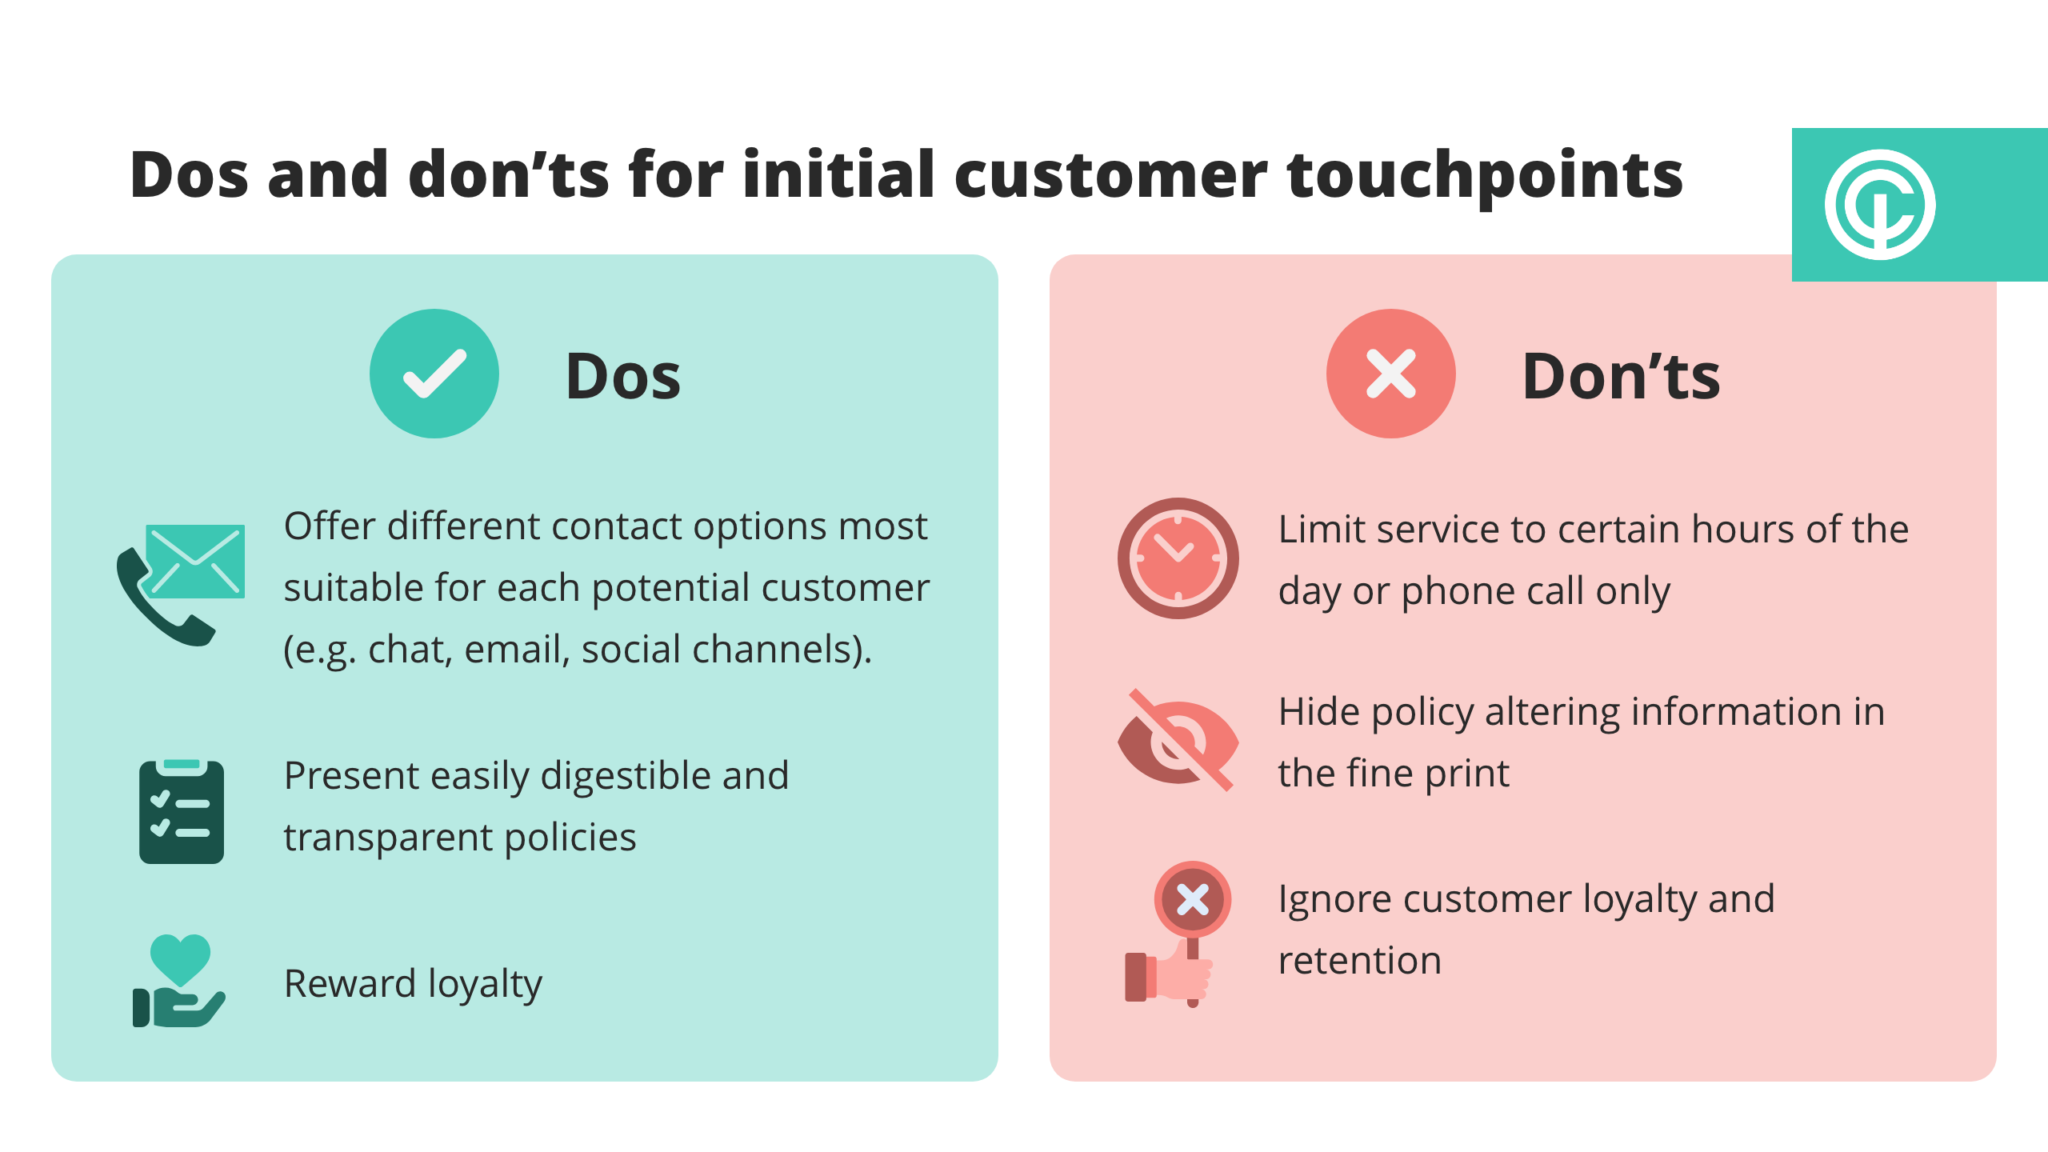 Dos and don'ts for initial customer touchpoints